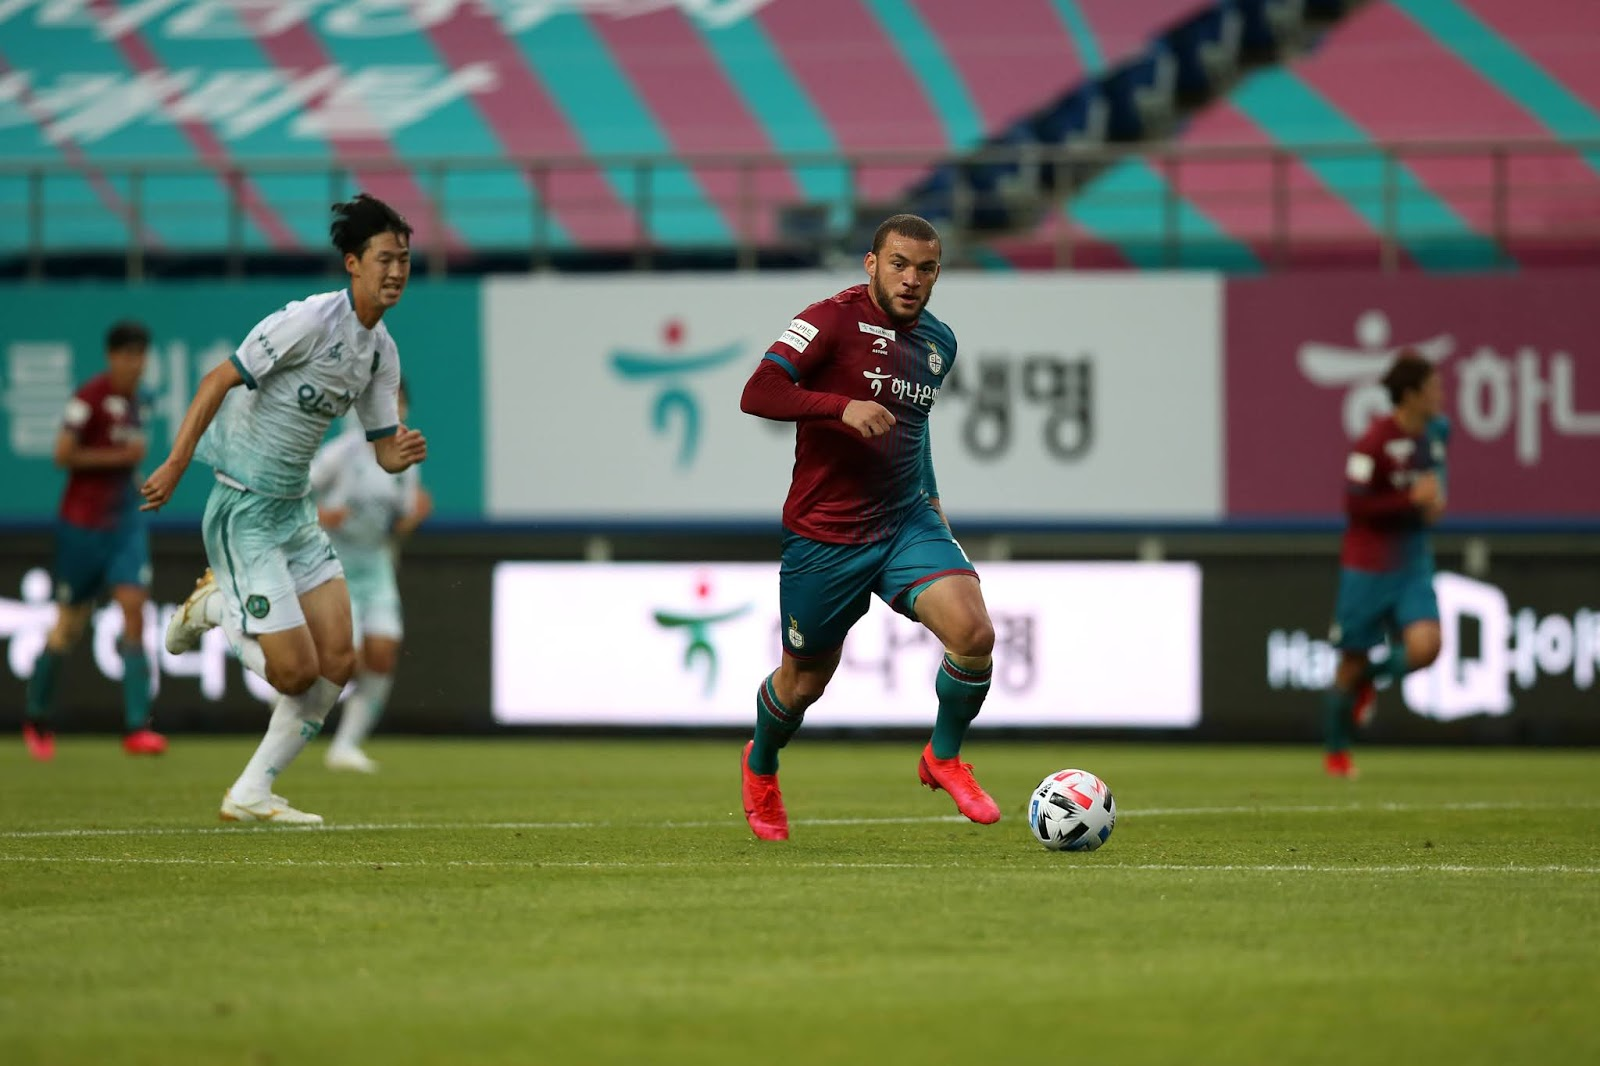 Preview: Daejeon Hana Citizen vs Jeonnam Dragons K League 2 Round 7